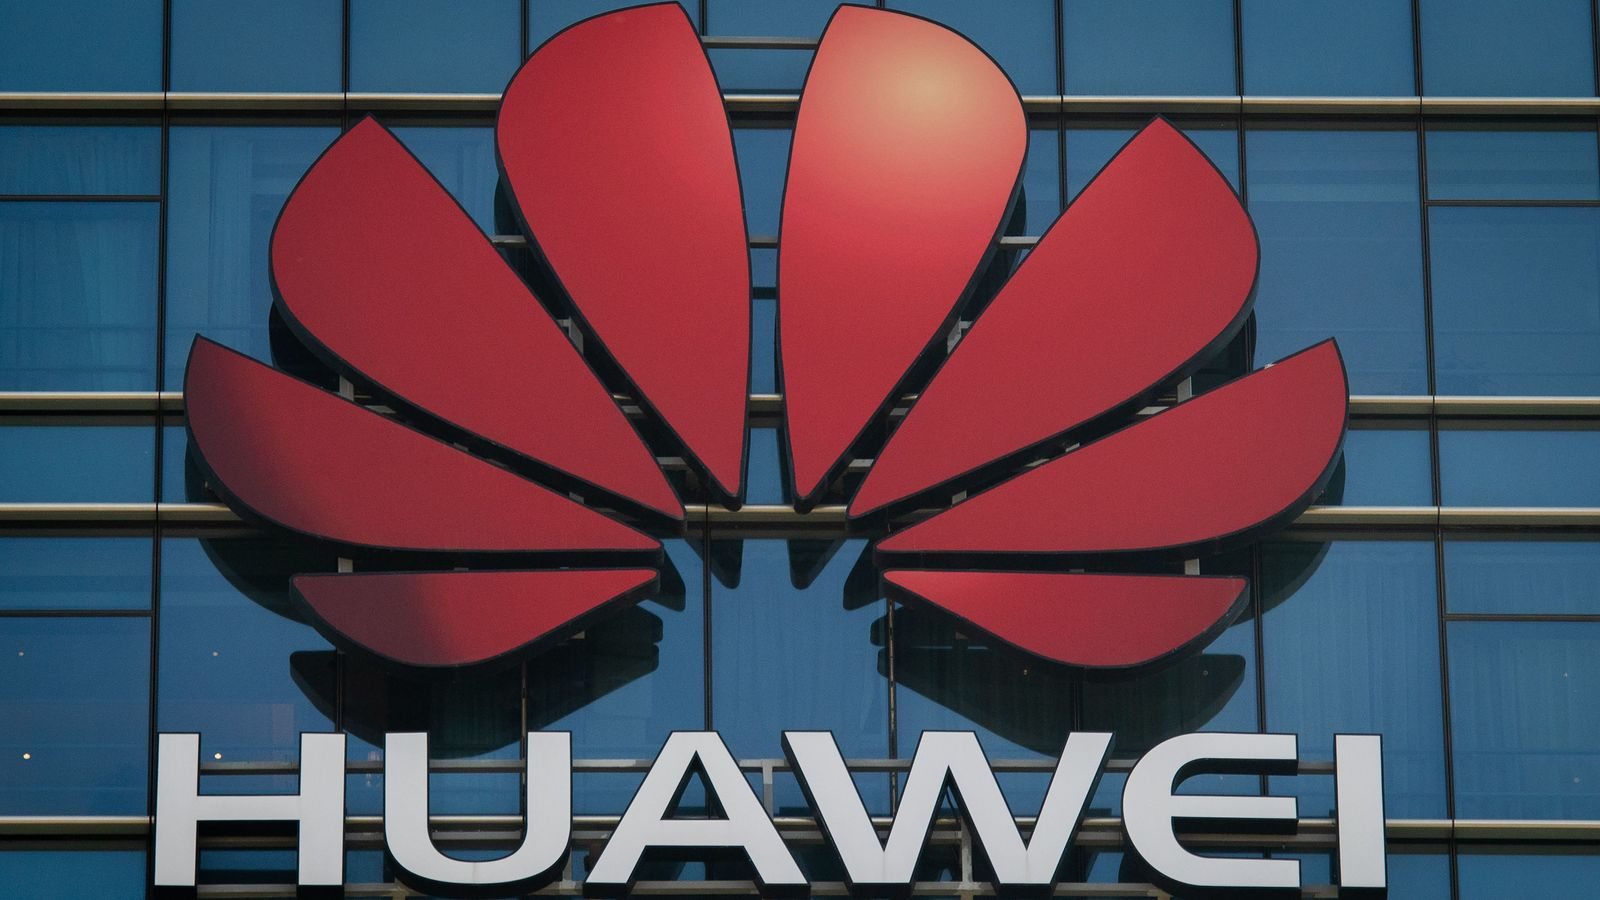 Task force to find Huawei replacement in 5G networks launched